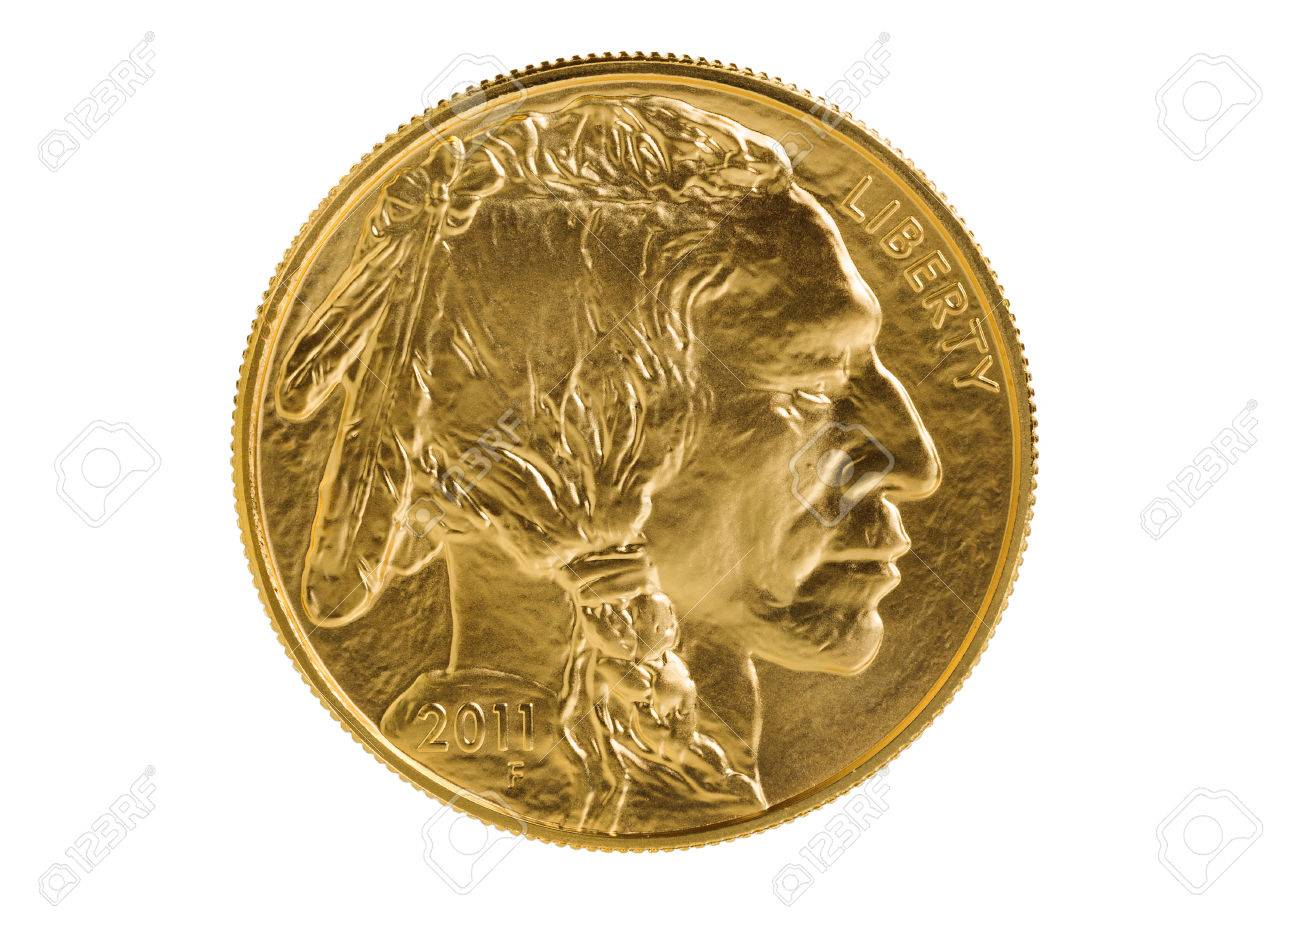 Obverse side of American Gold Buffalo coin fine gold isolated on pure white background. Coin in pristine condition shot in studio with macro lens. - 41655794